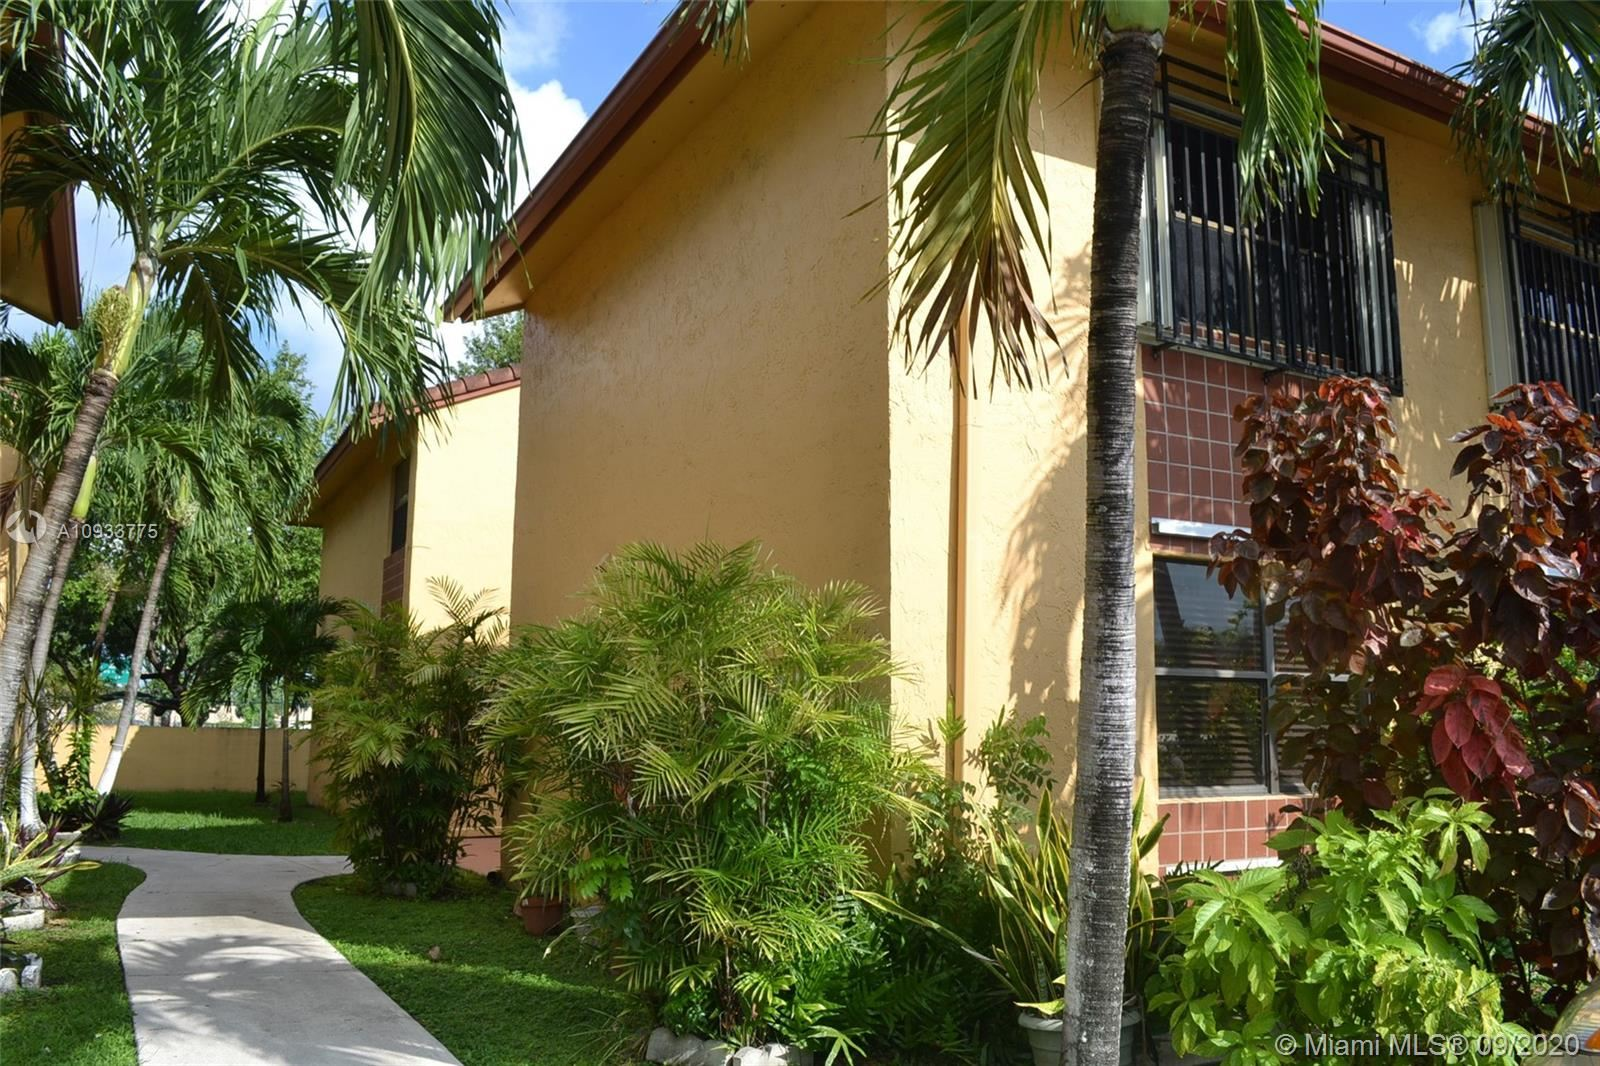 10839 NW 7th St #12-23, Miami, FL 33172 - #: A10933775